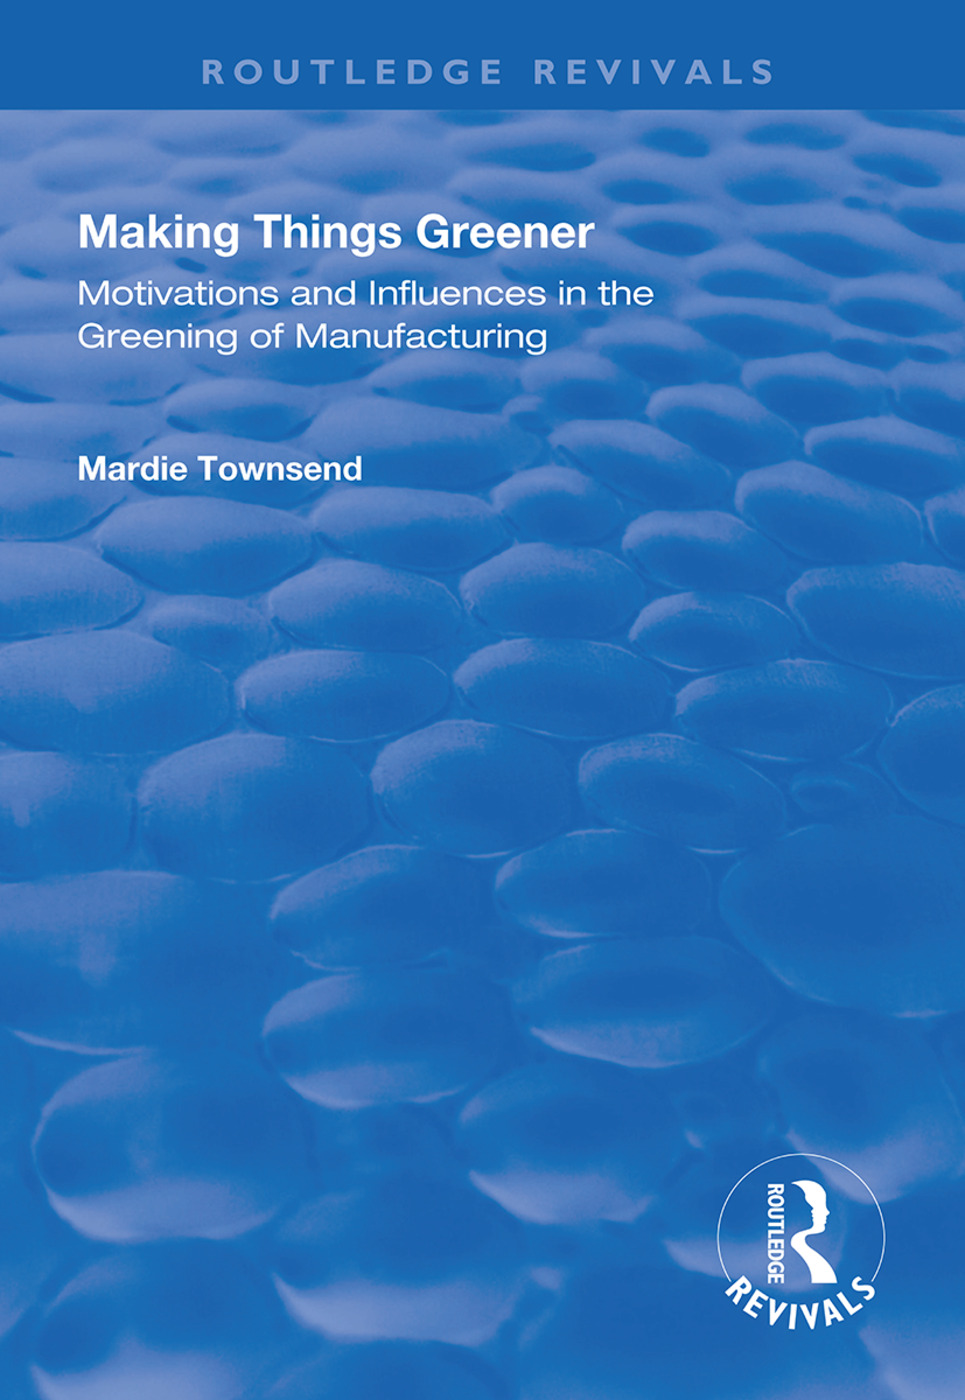 Making Things Greener: Motivations and Influences in the Greening of Manufacturing book cover